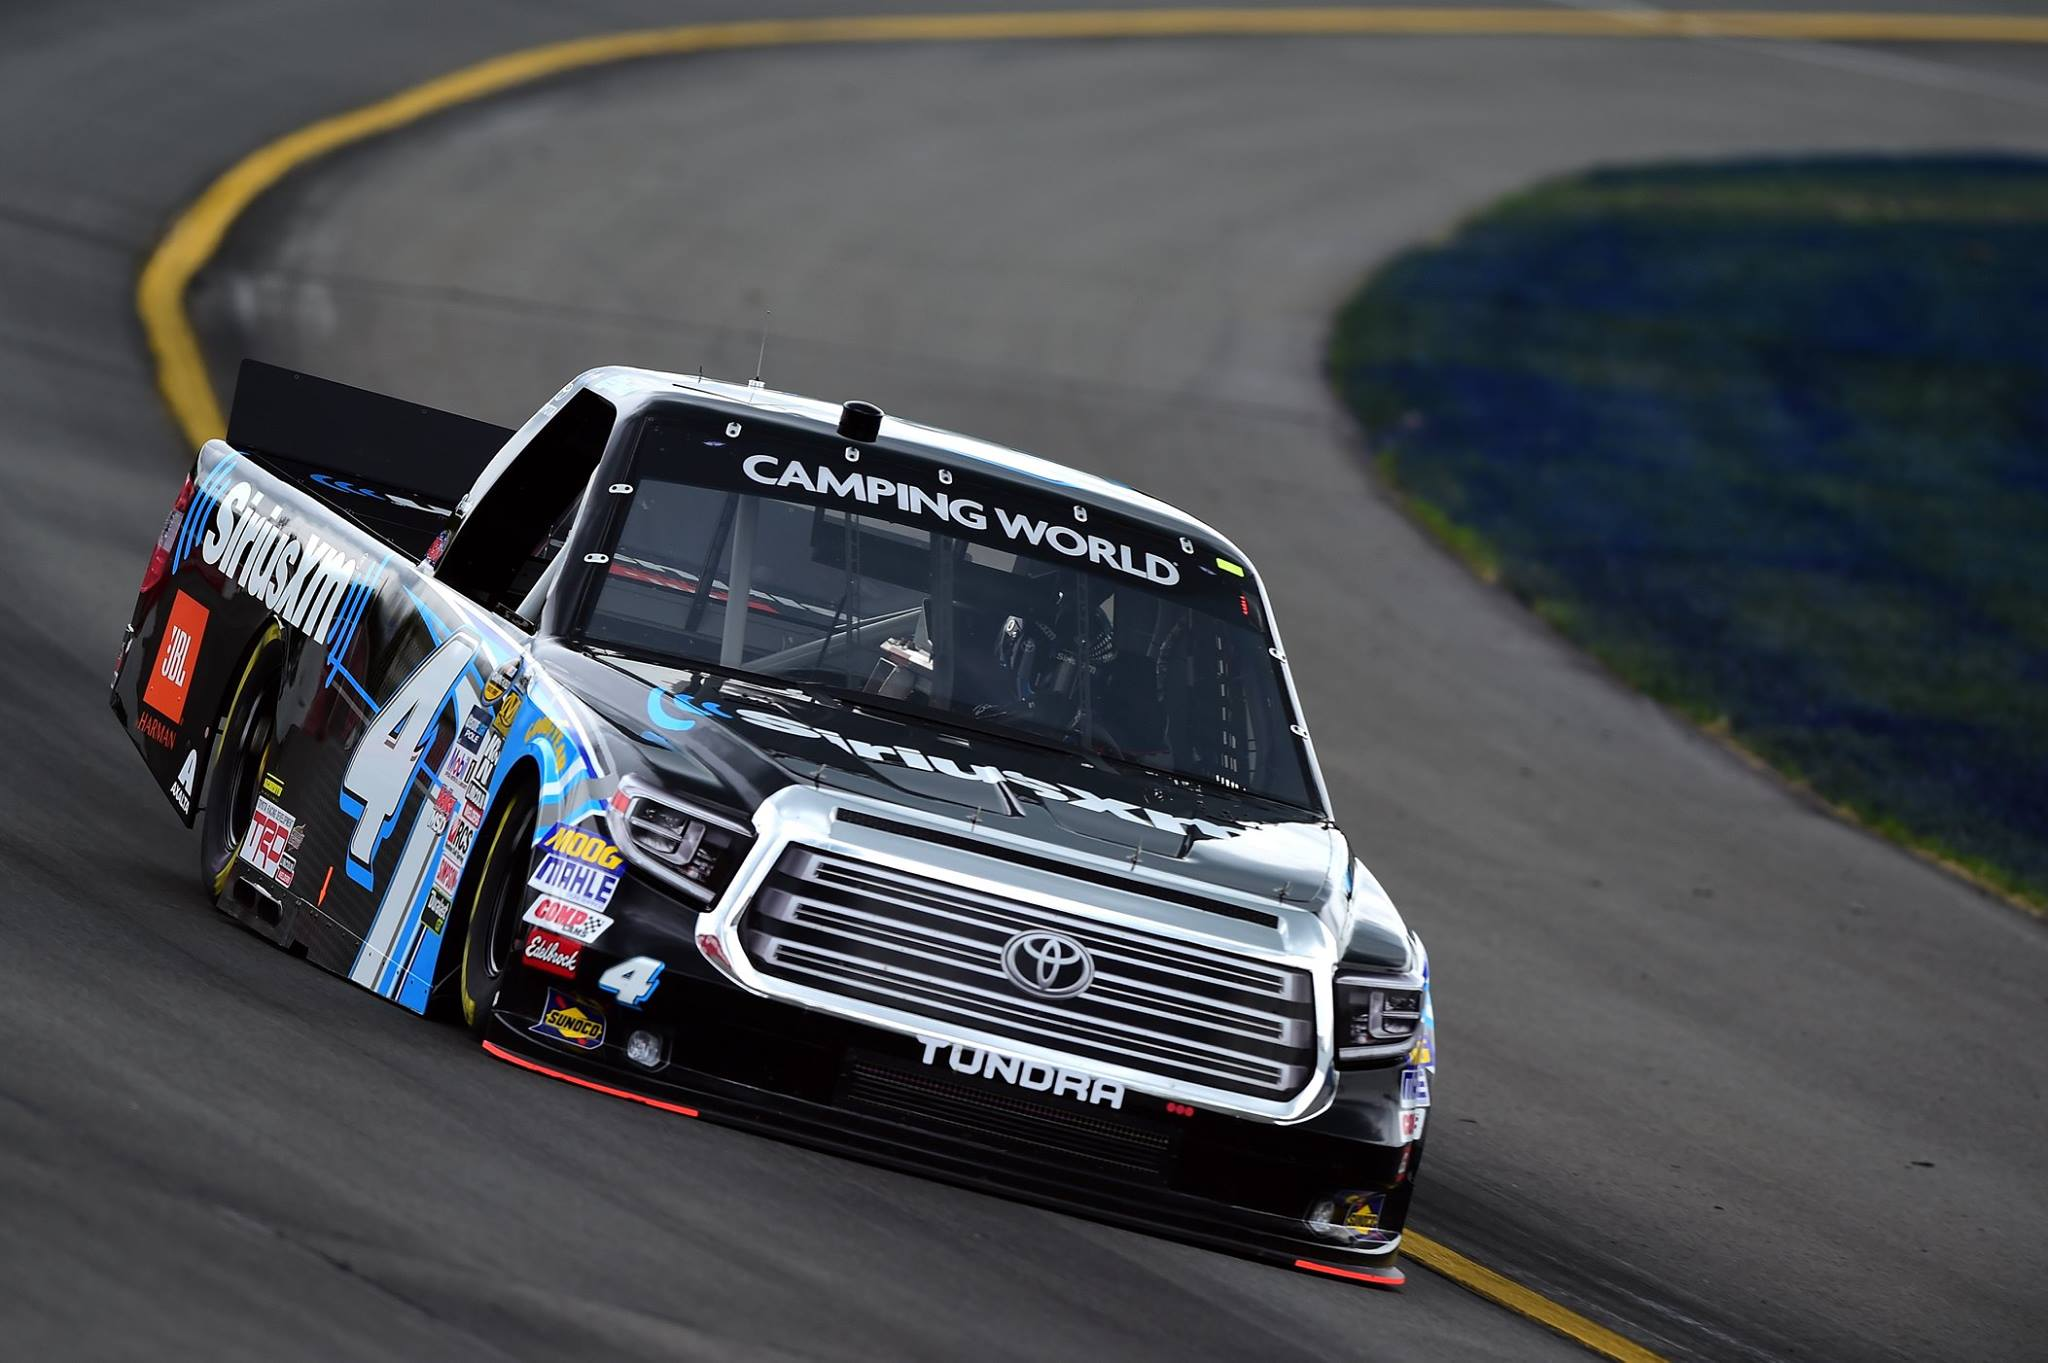 Christopher Bell - Pocono Raceway - NASCAR Camping World Truck Series